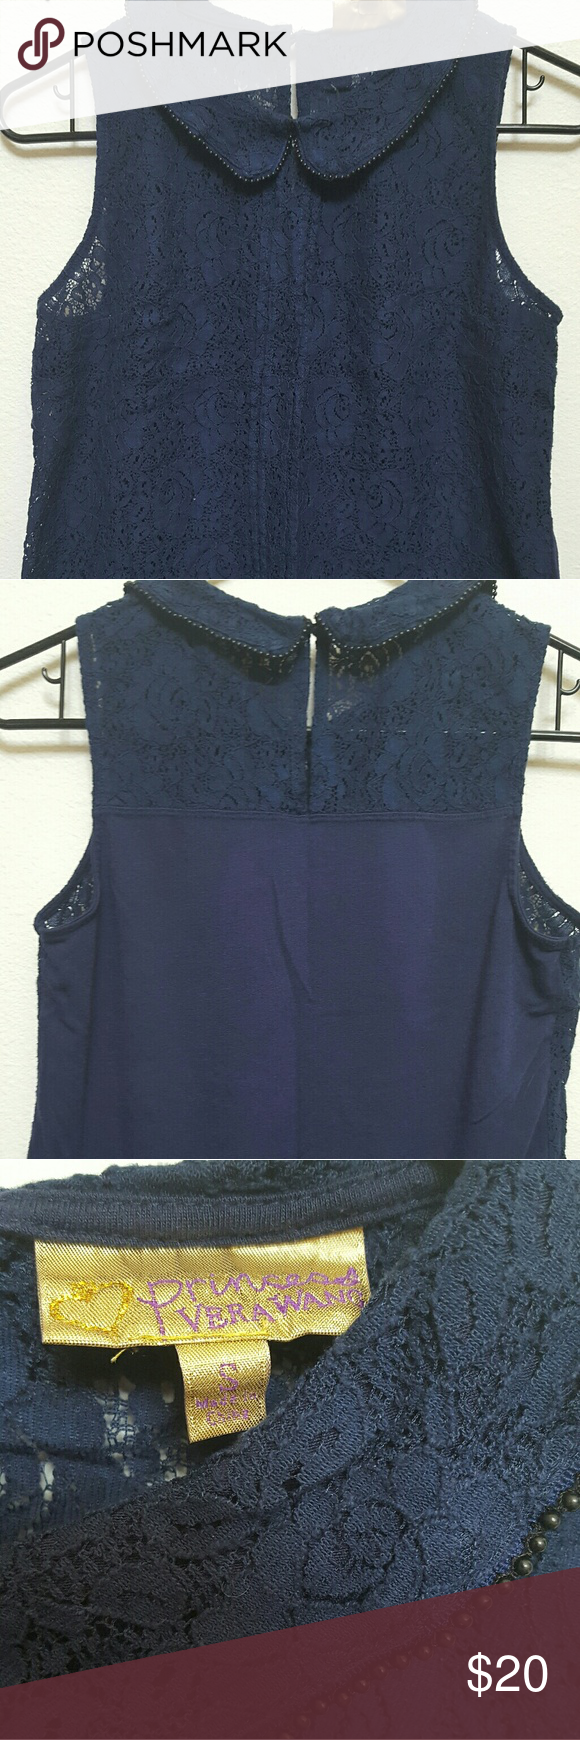 Blue lace, sleeveless top Blue lace top, collar with round black beads around the edge, button closure in back Vera Wang Tops Sweatshirts & Hoodies